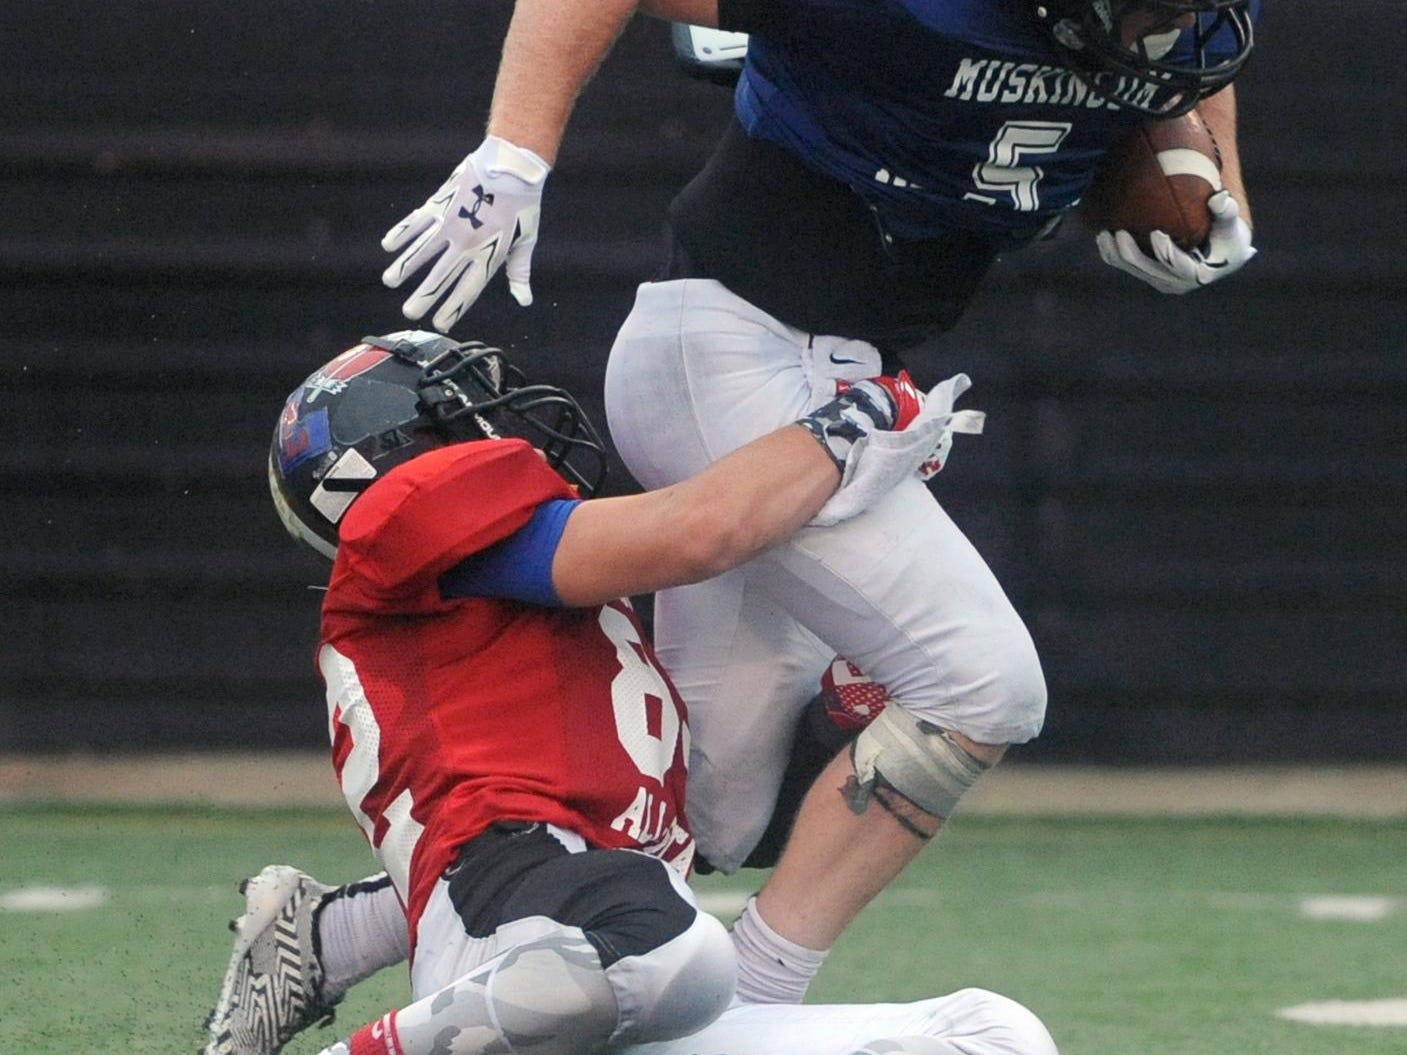 Licking County's Cameron Smith wraps up Muskingum Valley's Logan Bash in the second quarter of the Licking-Muskinumg All-Star Game this past Friday at Tri-Valley. Smith was one of four Watkins Memorial graduates playing in the game.